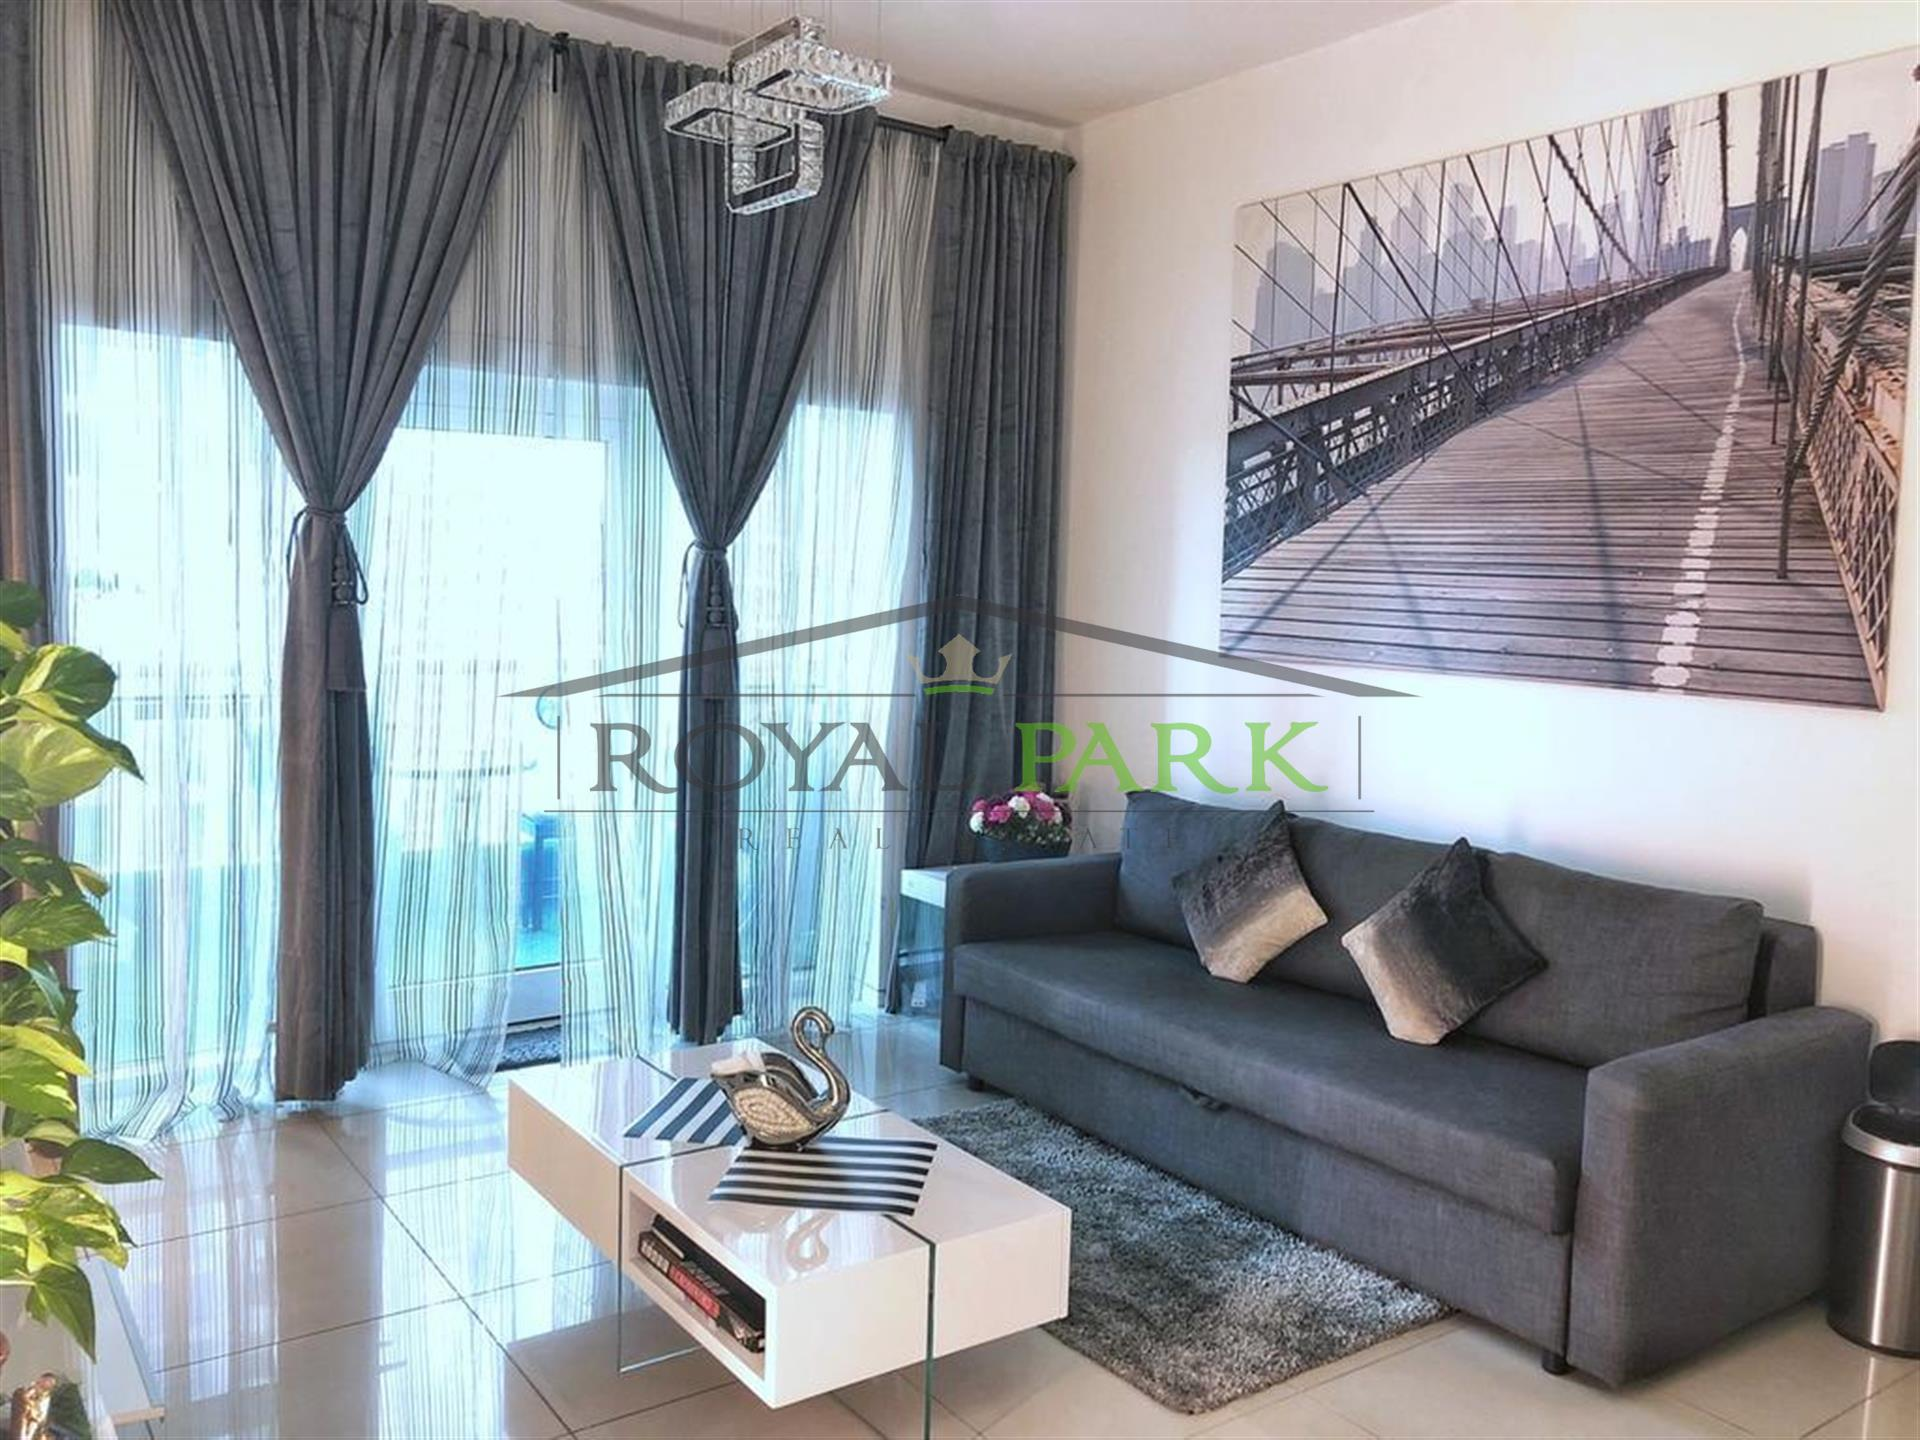 Fully Furnished  1 B/R Apartment With Balcony